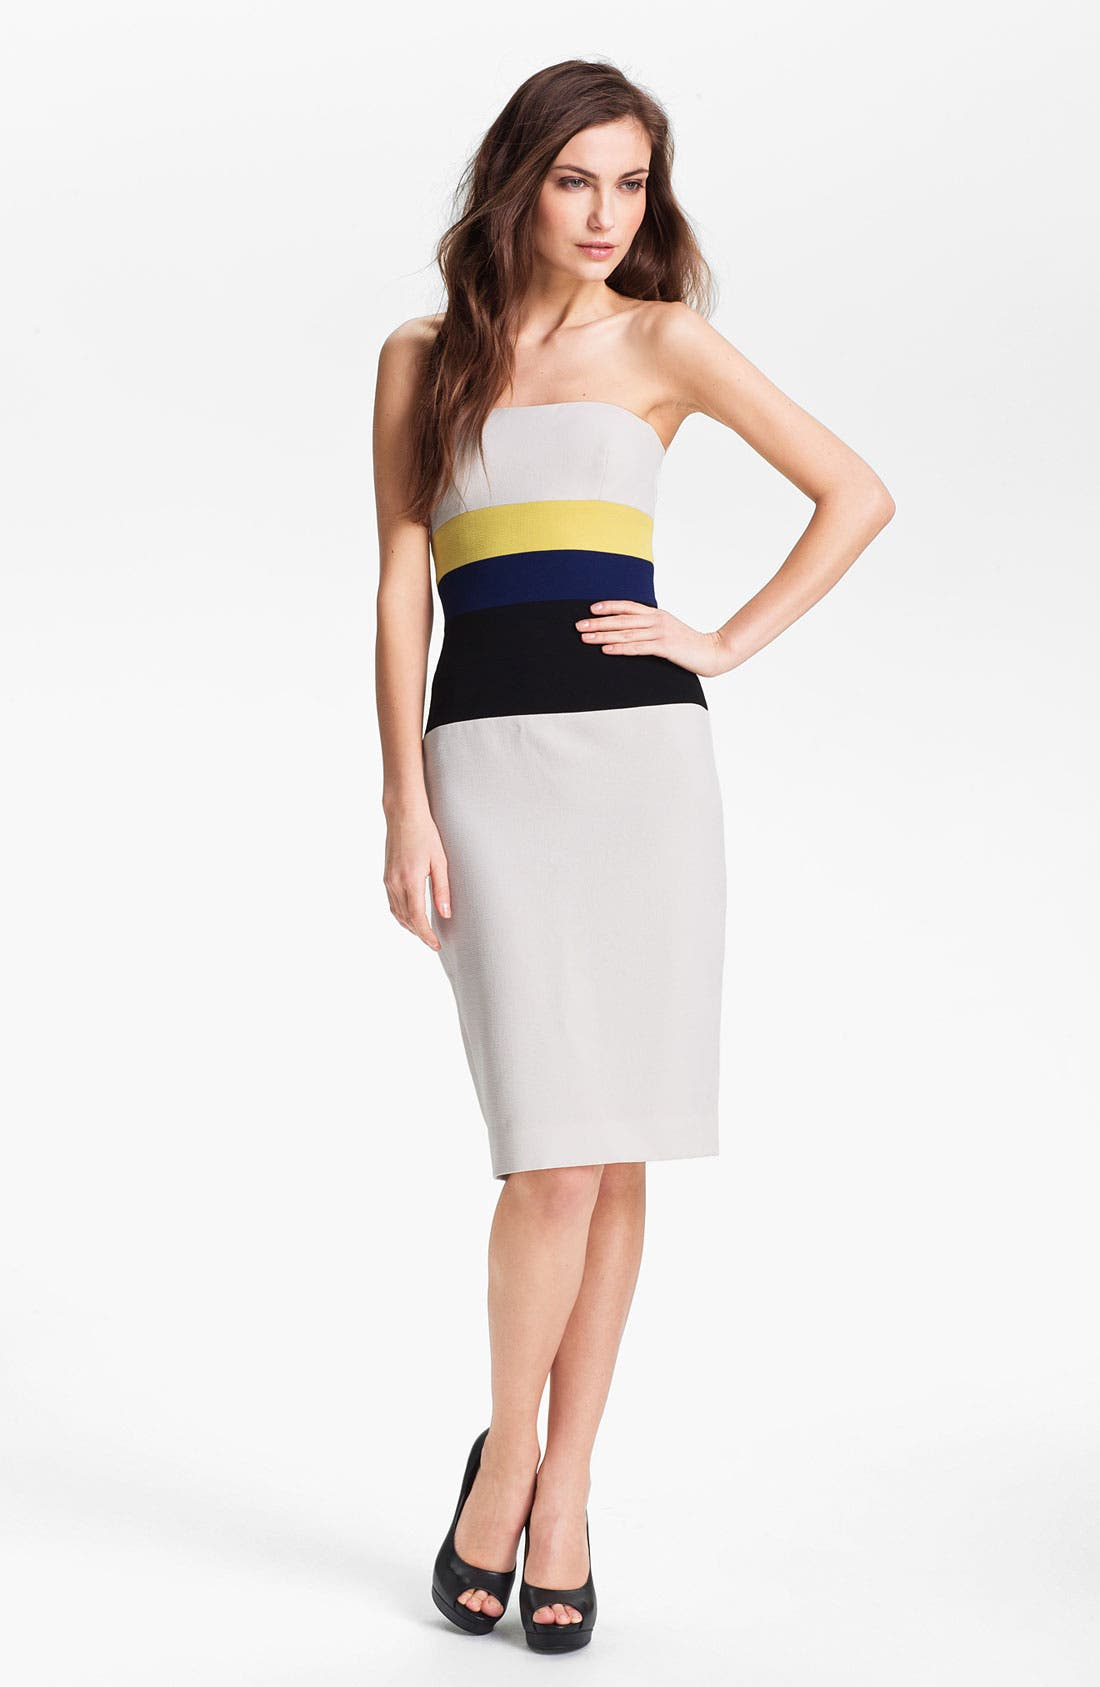 Alternate Image 1 Selected - BCBGMAXAZRIA Colorblocked Sheath Dress